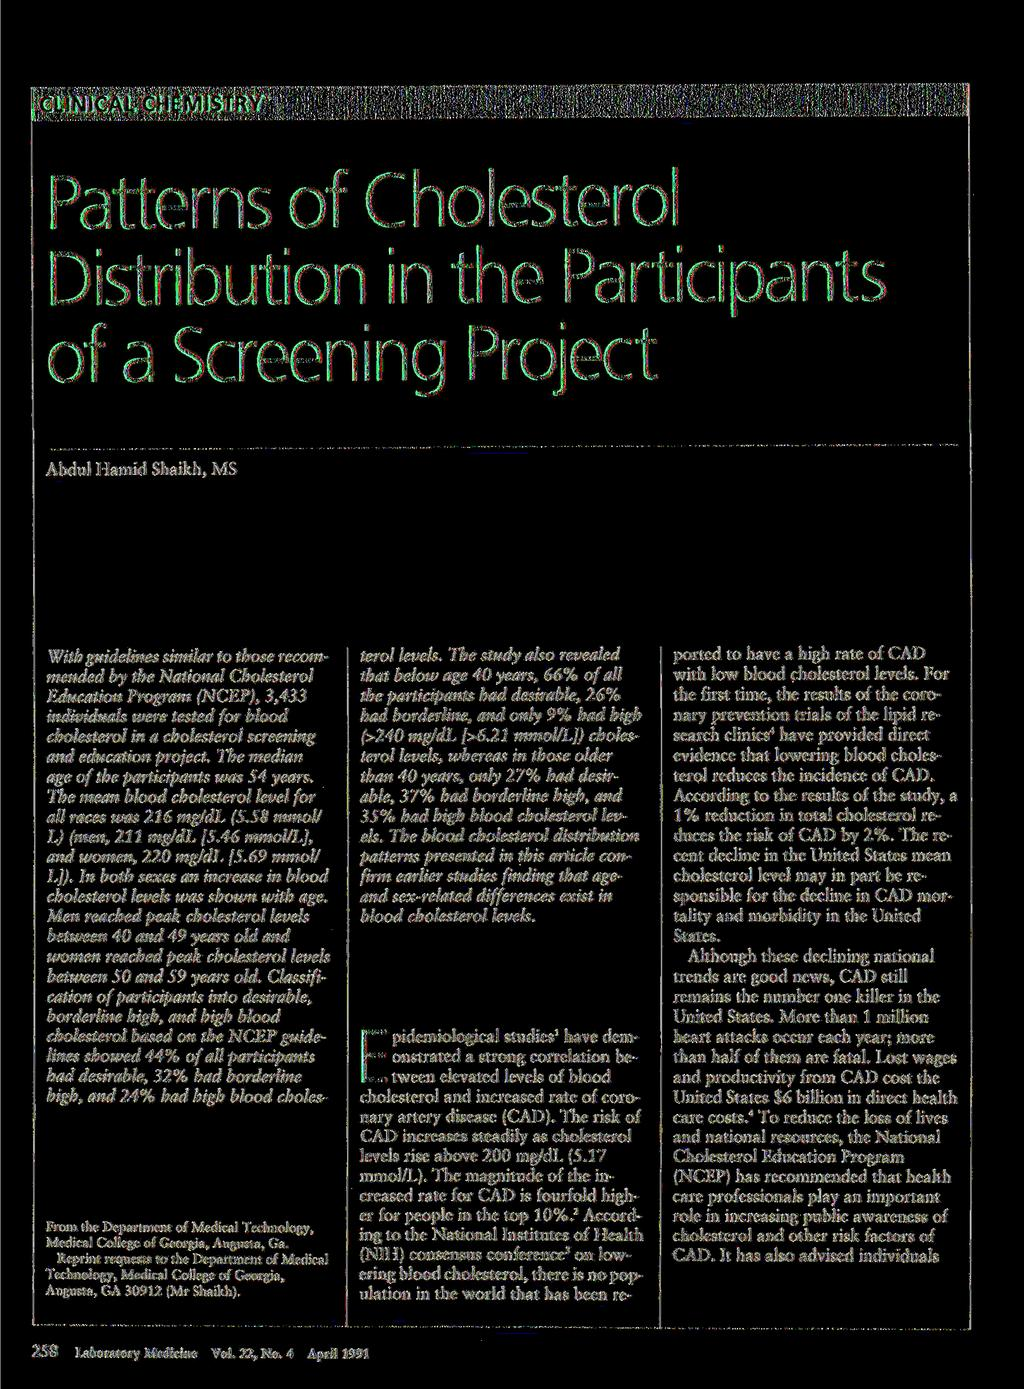 Patterns f Chlesterl Distributin in the Participants f a Screening Prject Abdul Hamid Shaikh, S With guidelines similar t thse recmmended by the Natinal Chlesterl Educatin Prgram (NCEP), 3,3